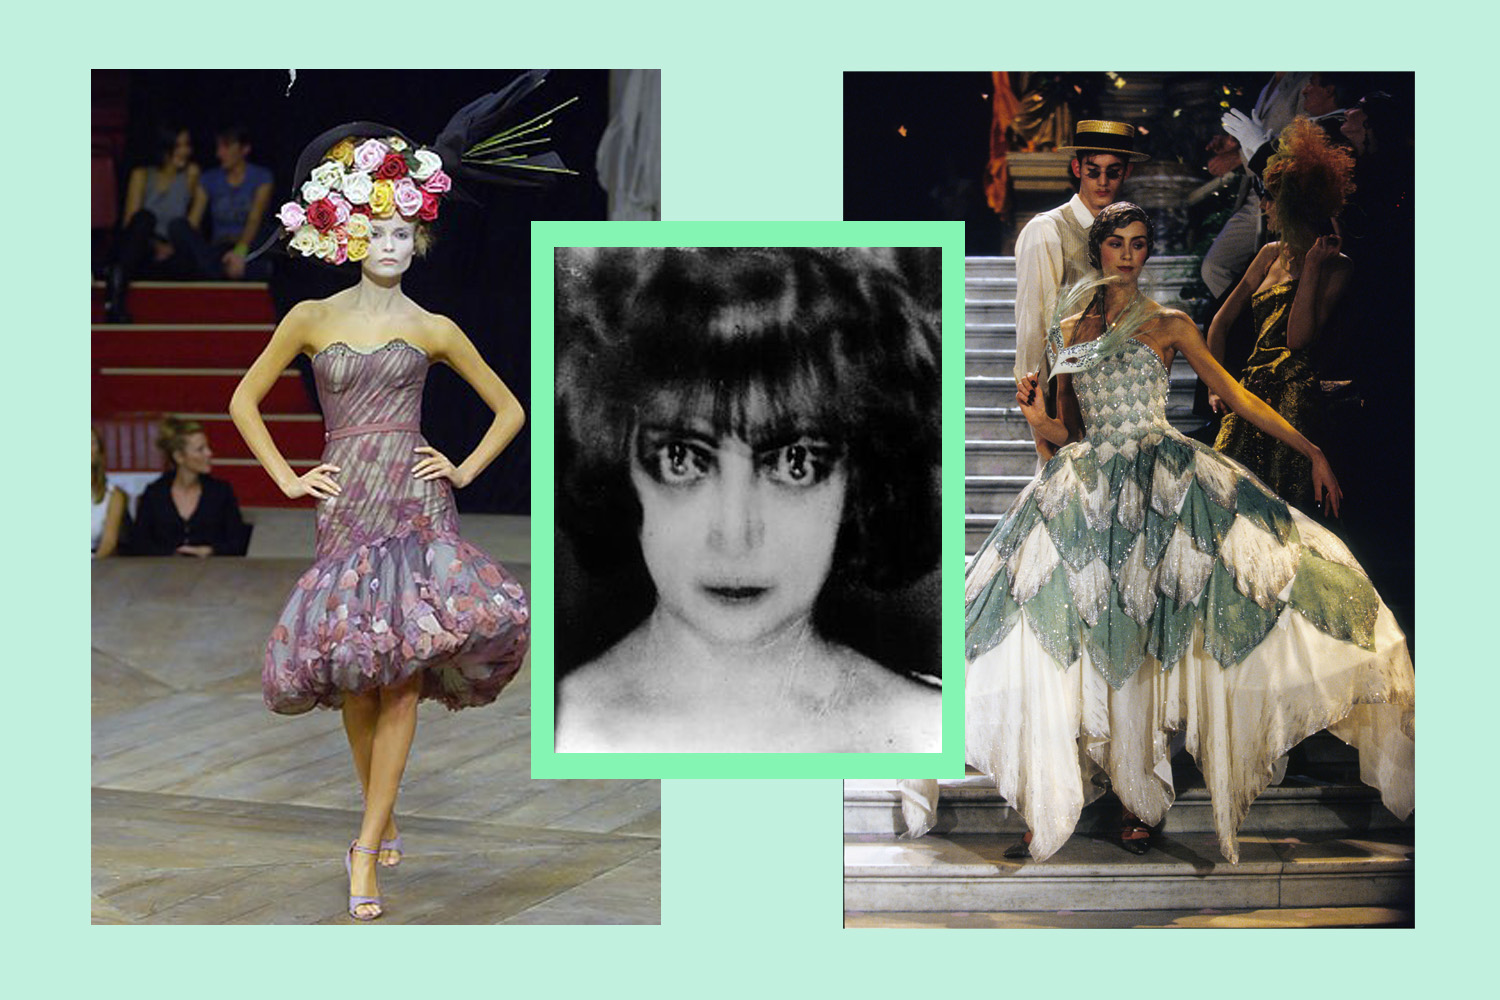 Images courtesy of Alexander McQueen, Man Ray and Christian Dior